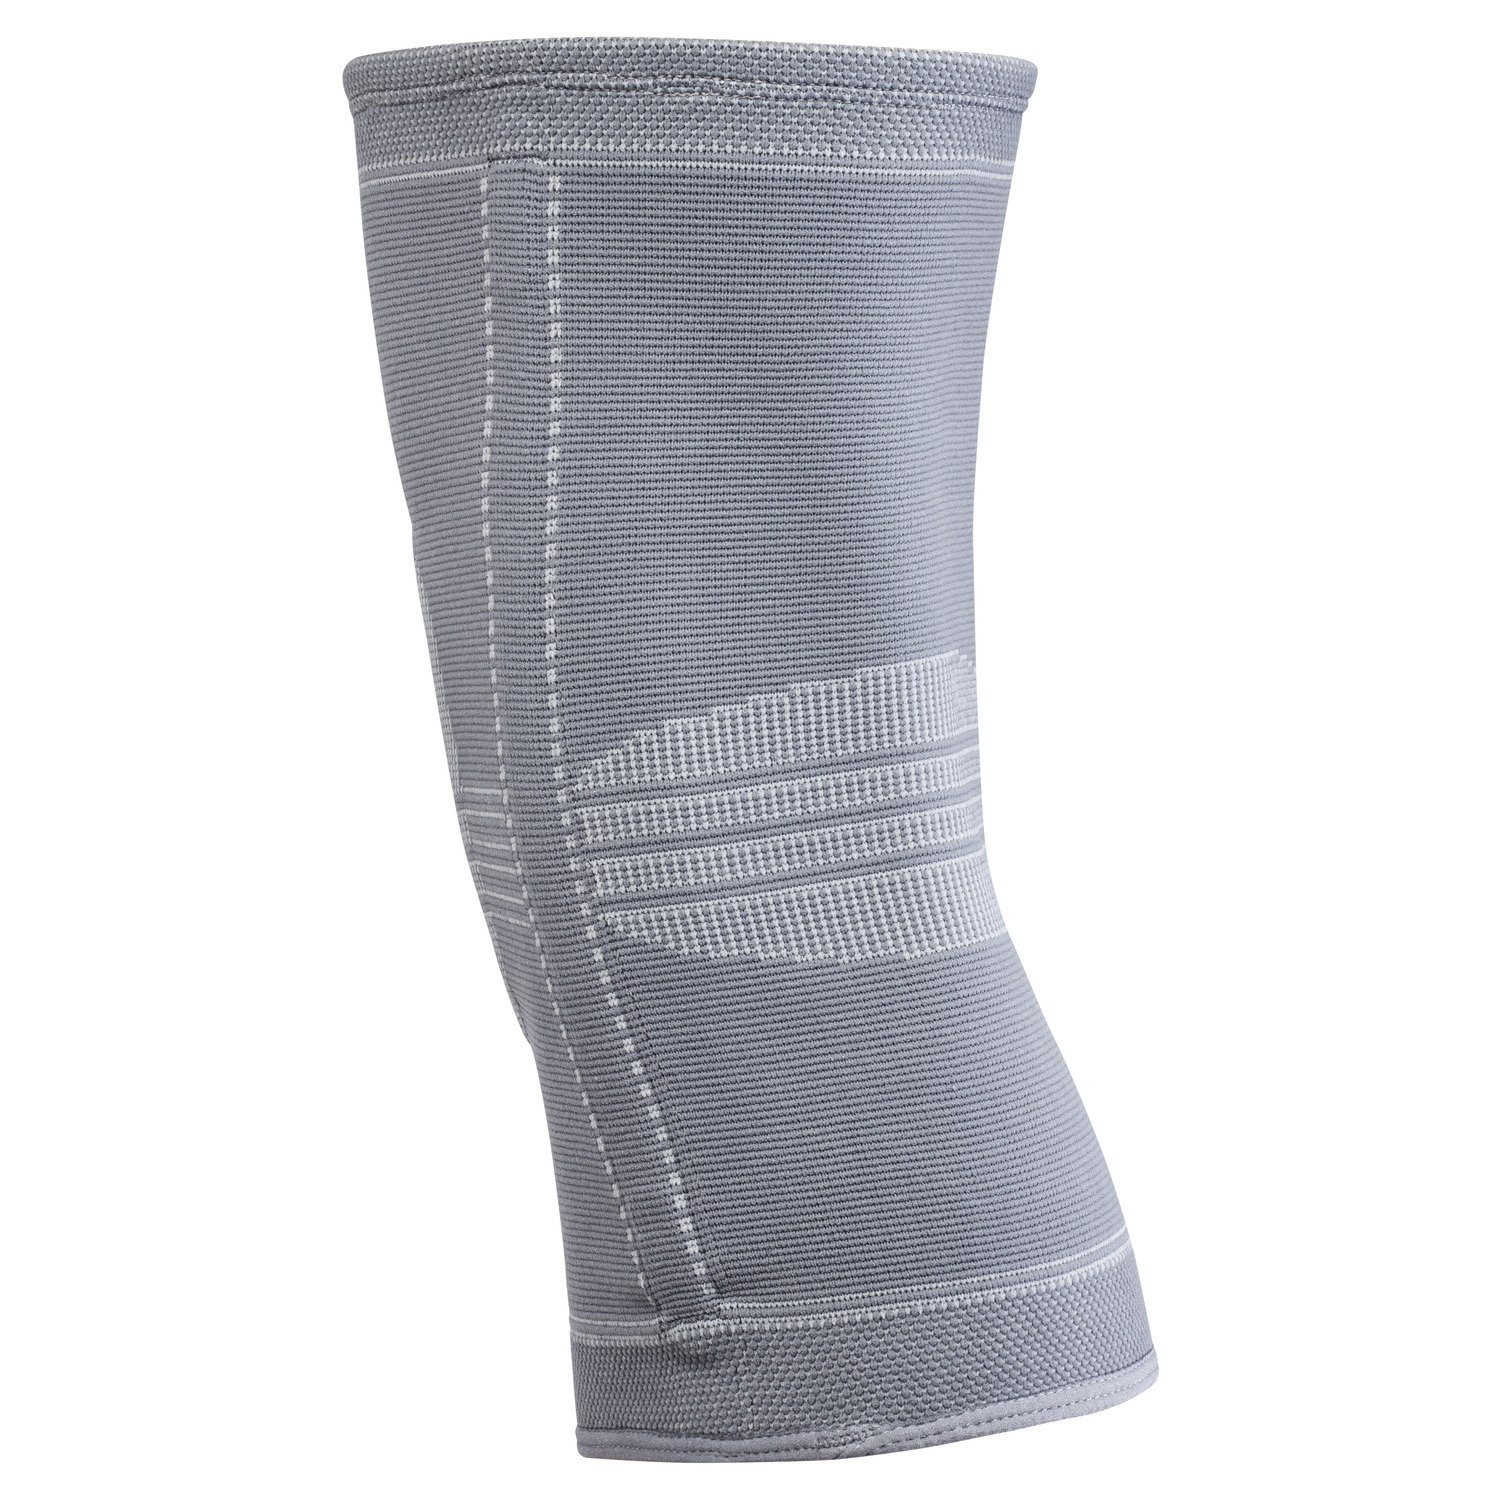 Futuro Active Knit Knee Stabilizer, Provides Support, Moderate Stabilizing Support, Medium, Gray by Futuro (Image #4)